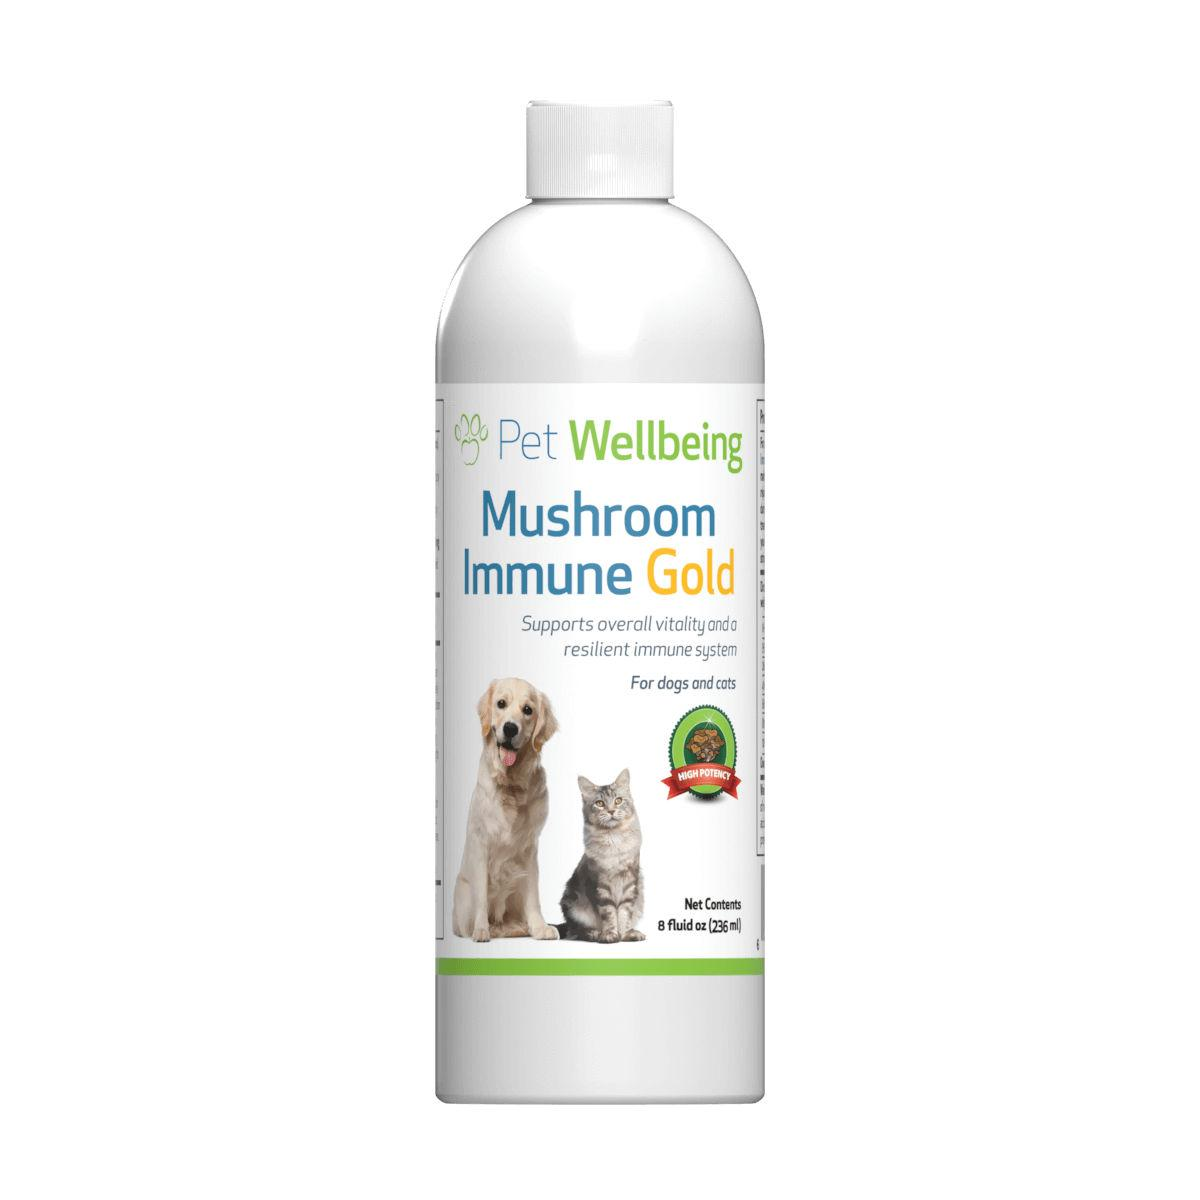 Pet Wellbeing Mushroom Immune Gold Cancer Support for Dogs and Cats